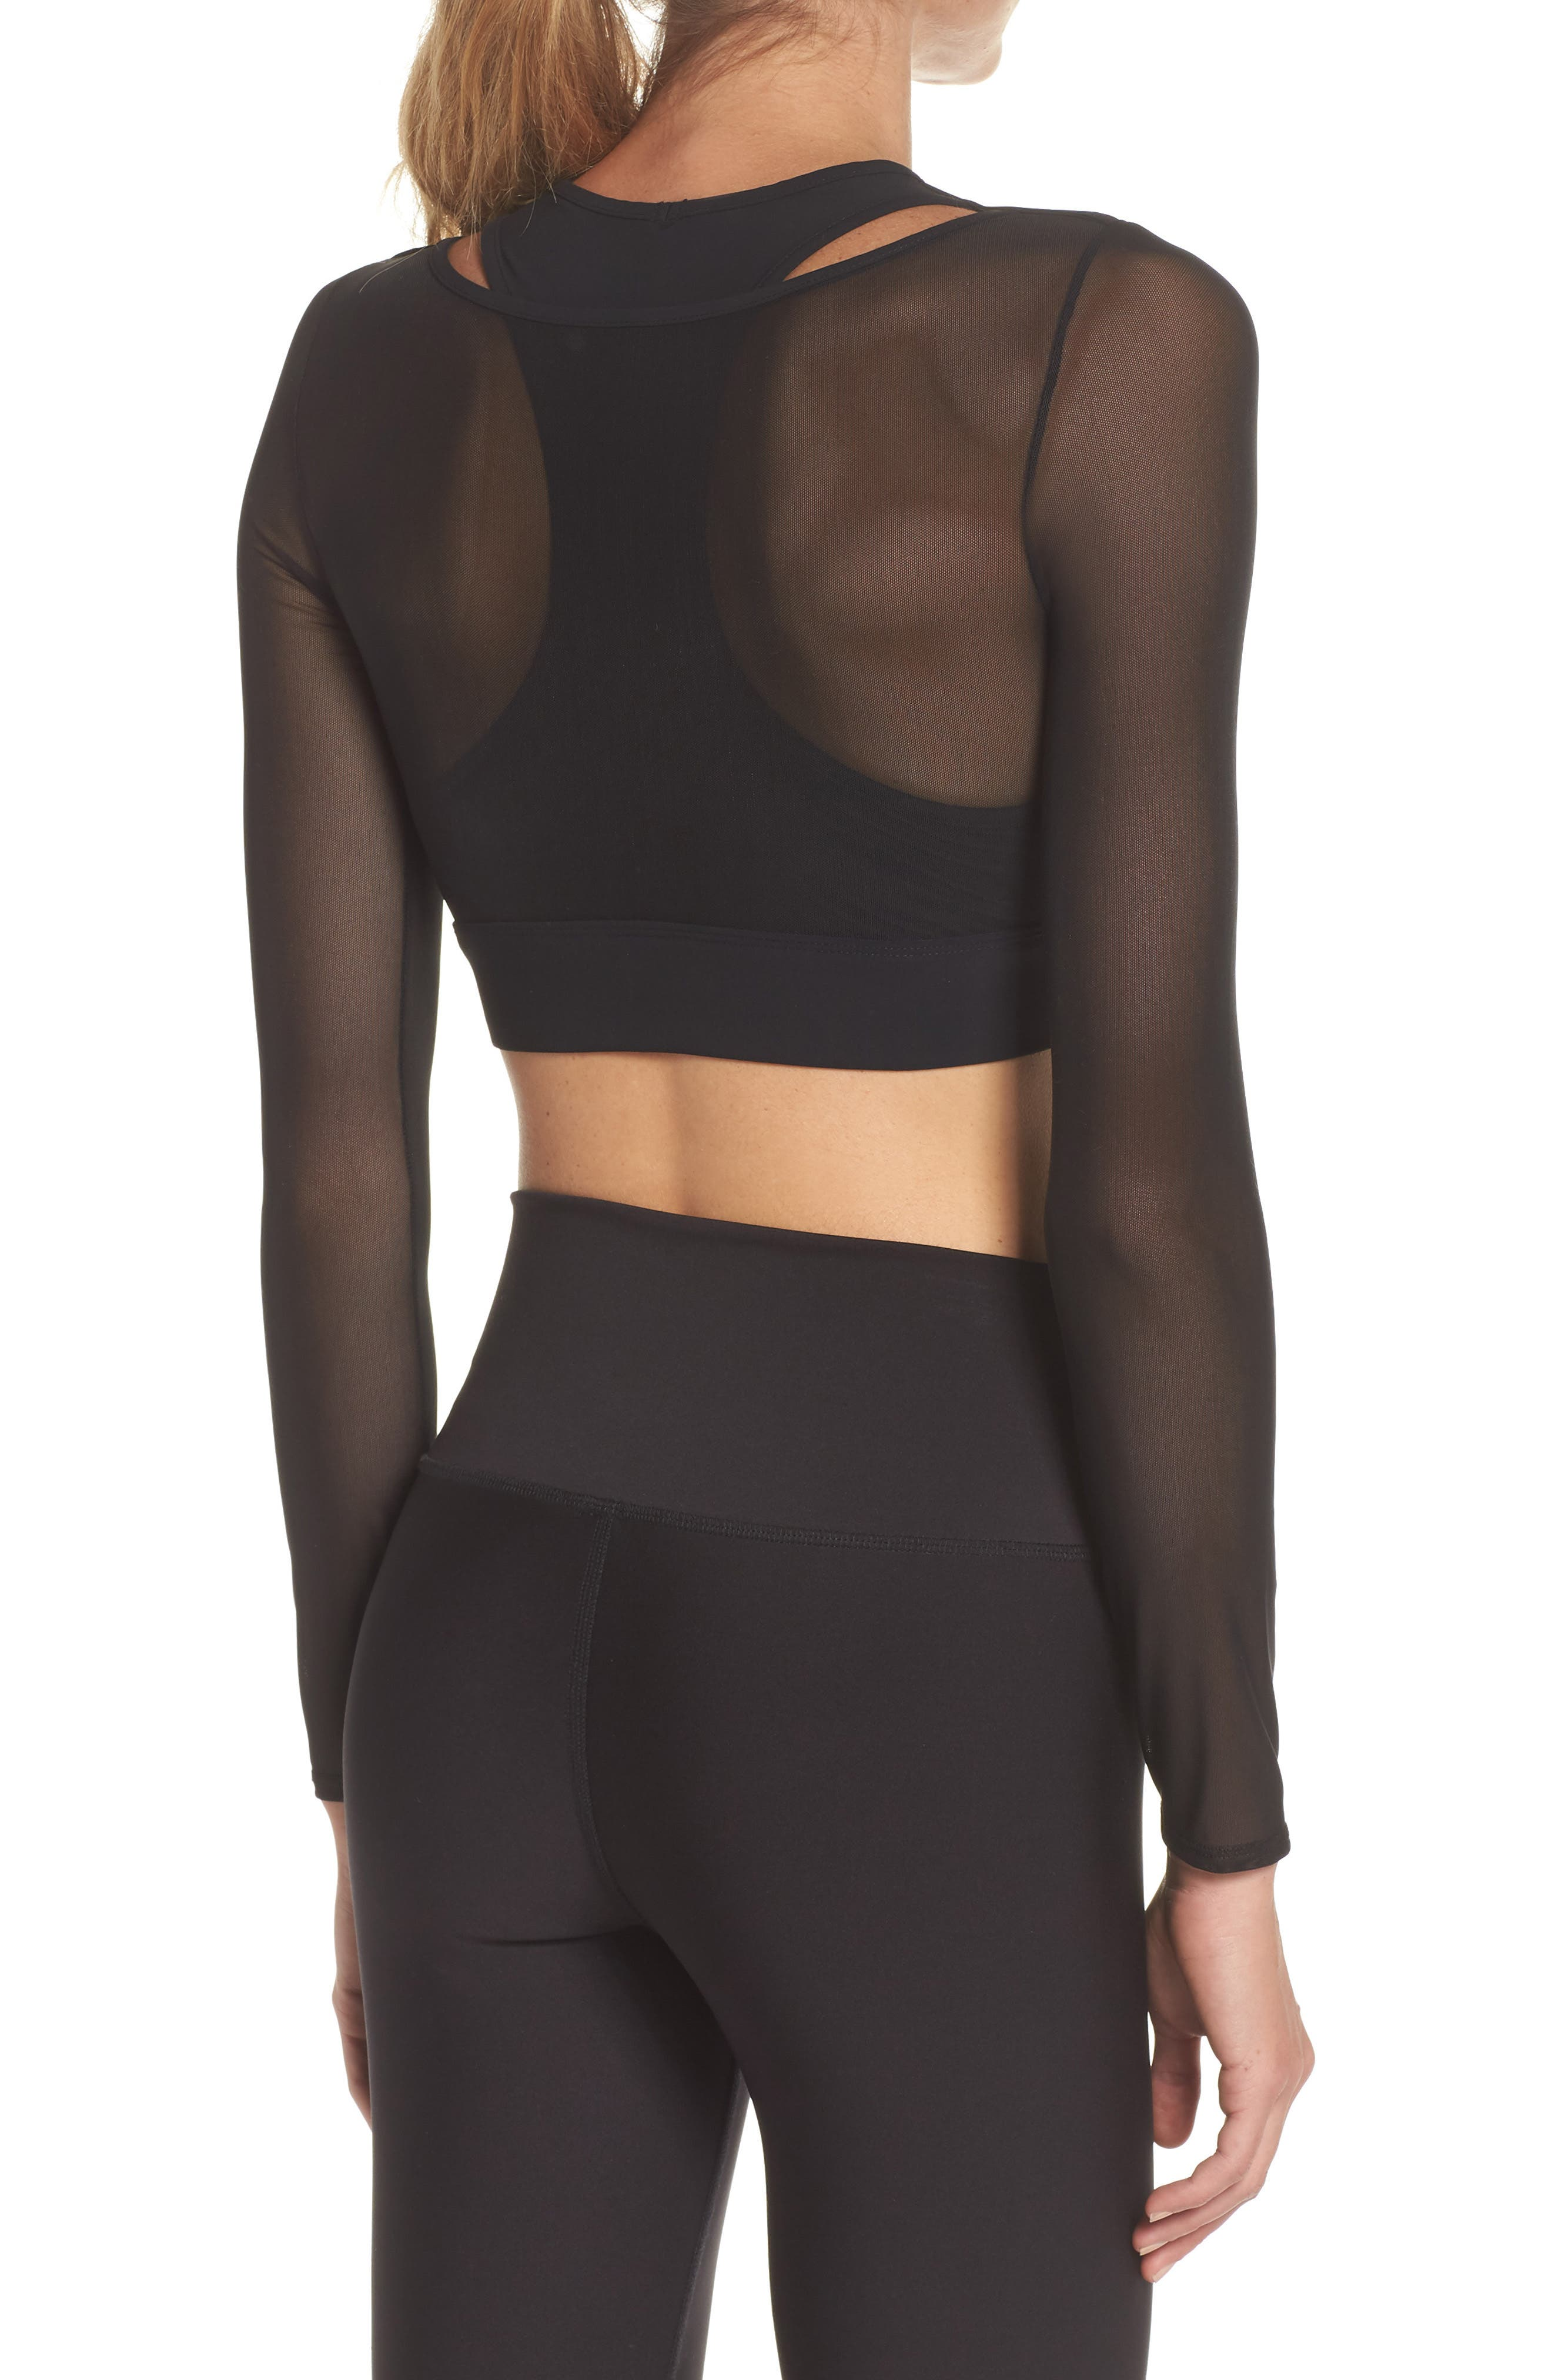 Pivot Layered Look Crop Top,                             Alternate thumbnail 2, color,                             BLACK